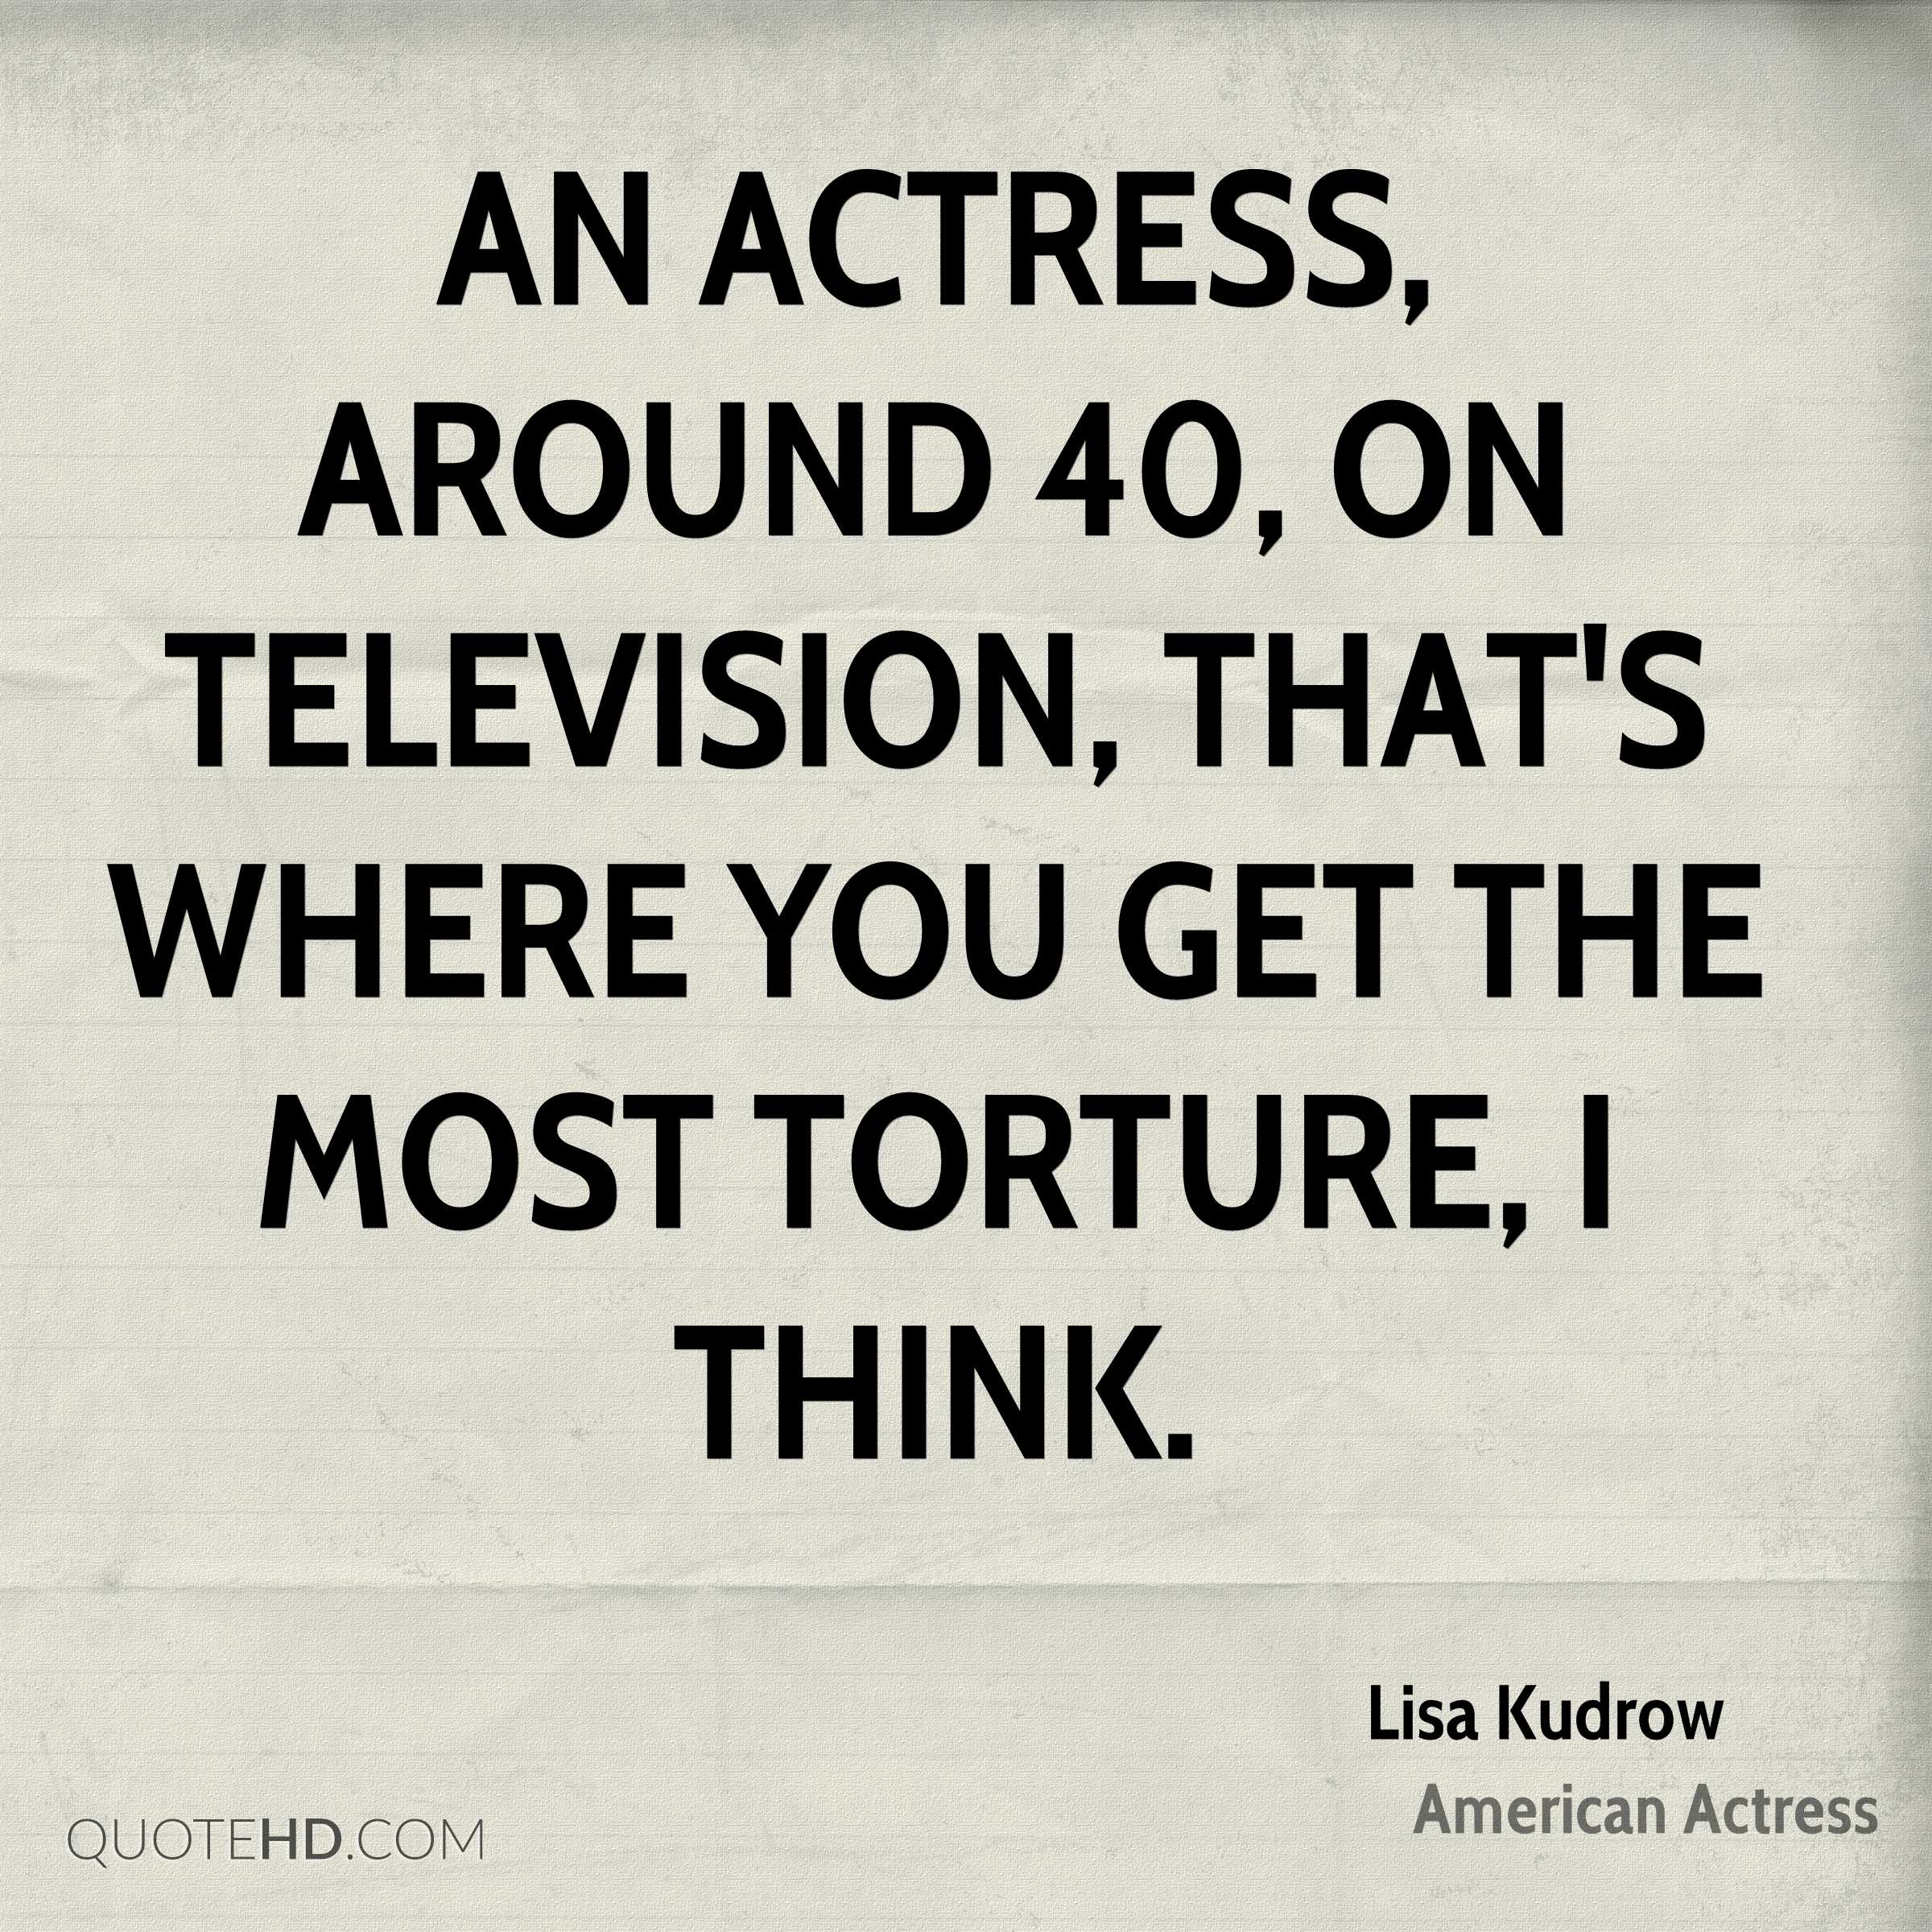 An actress, around 40, on television, that's where you get the most torture, I think.